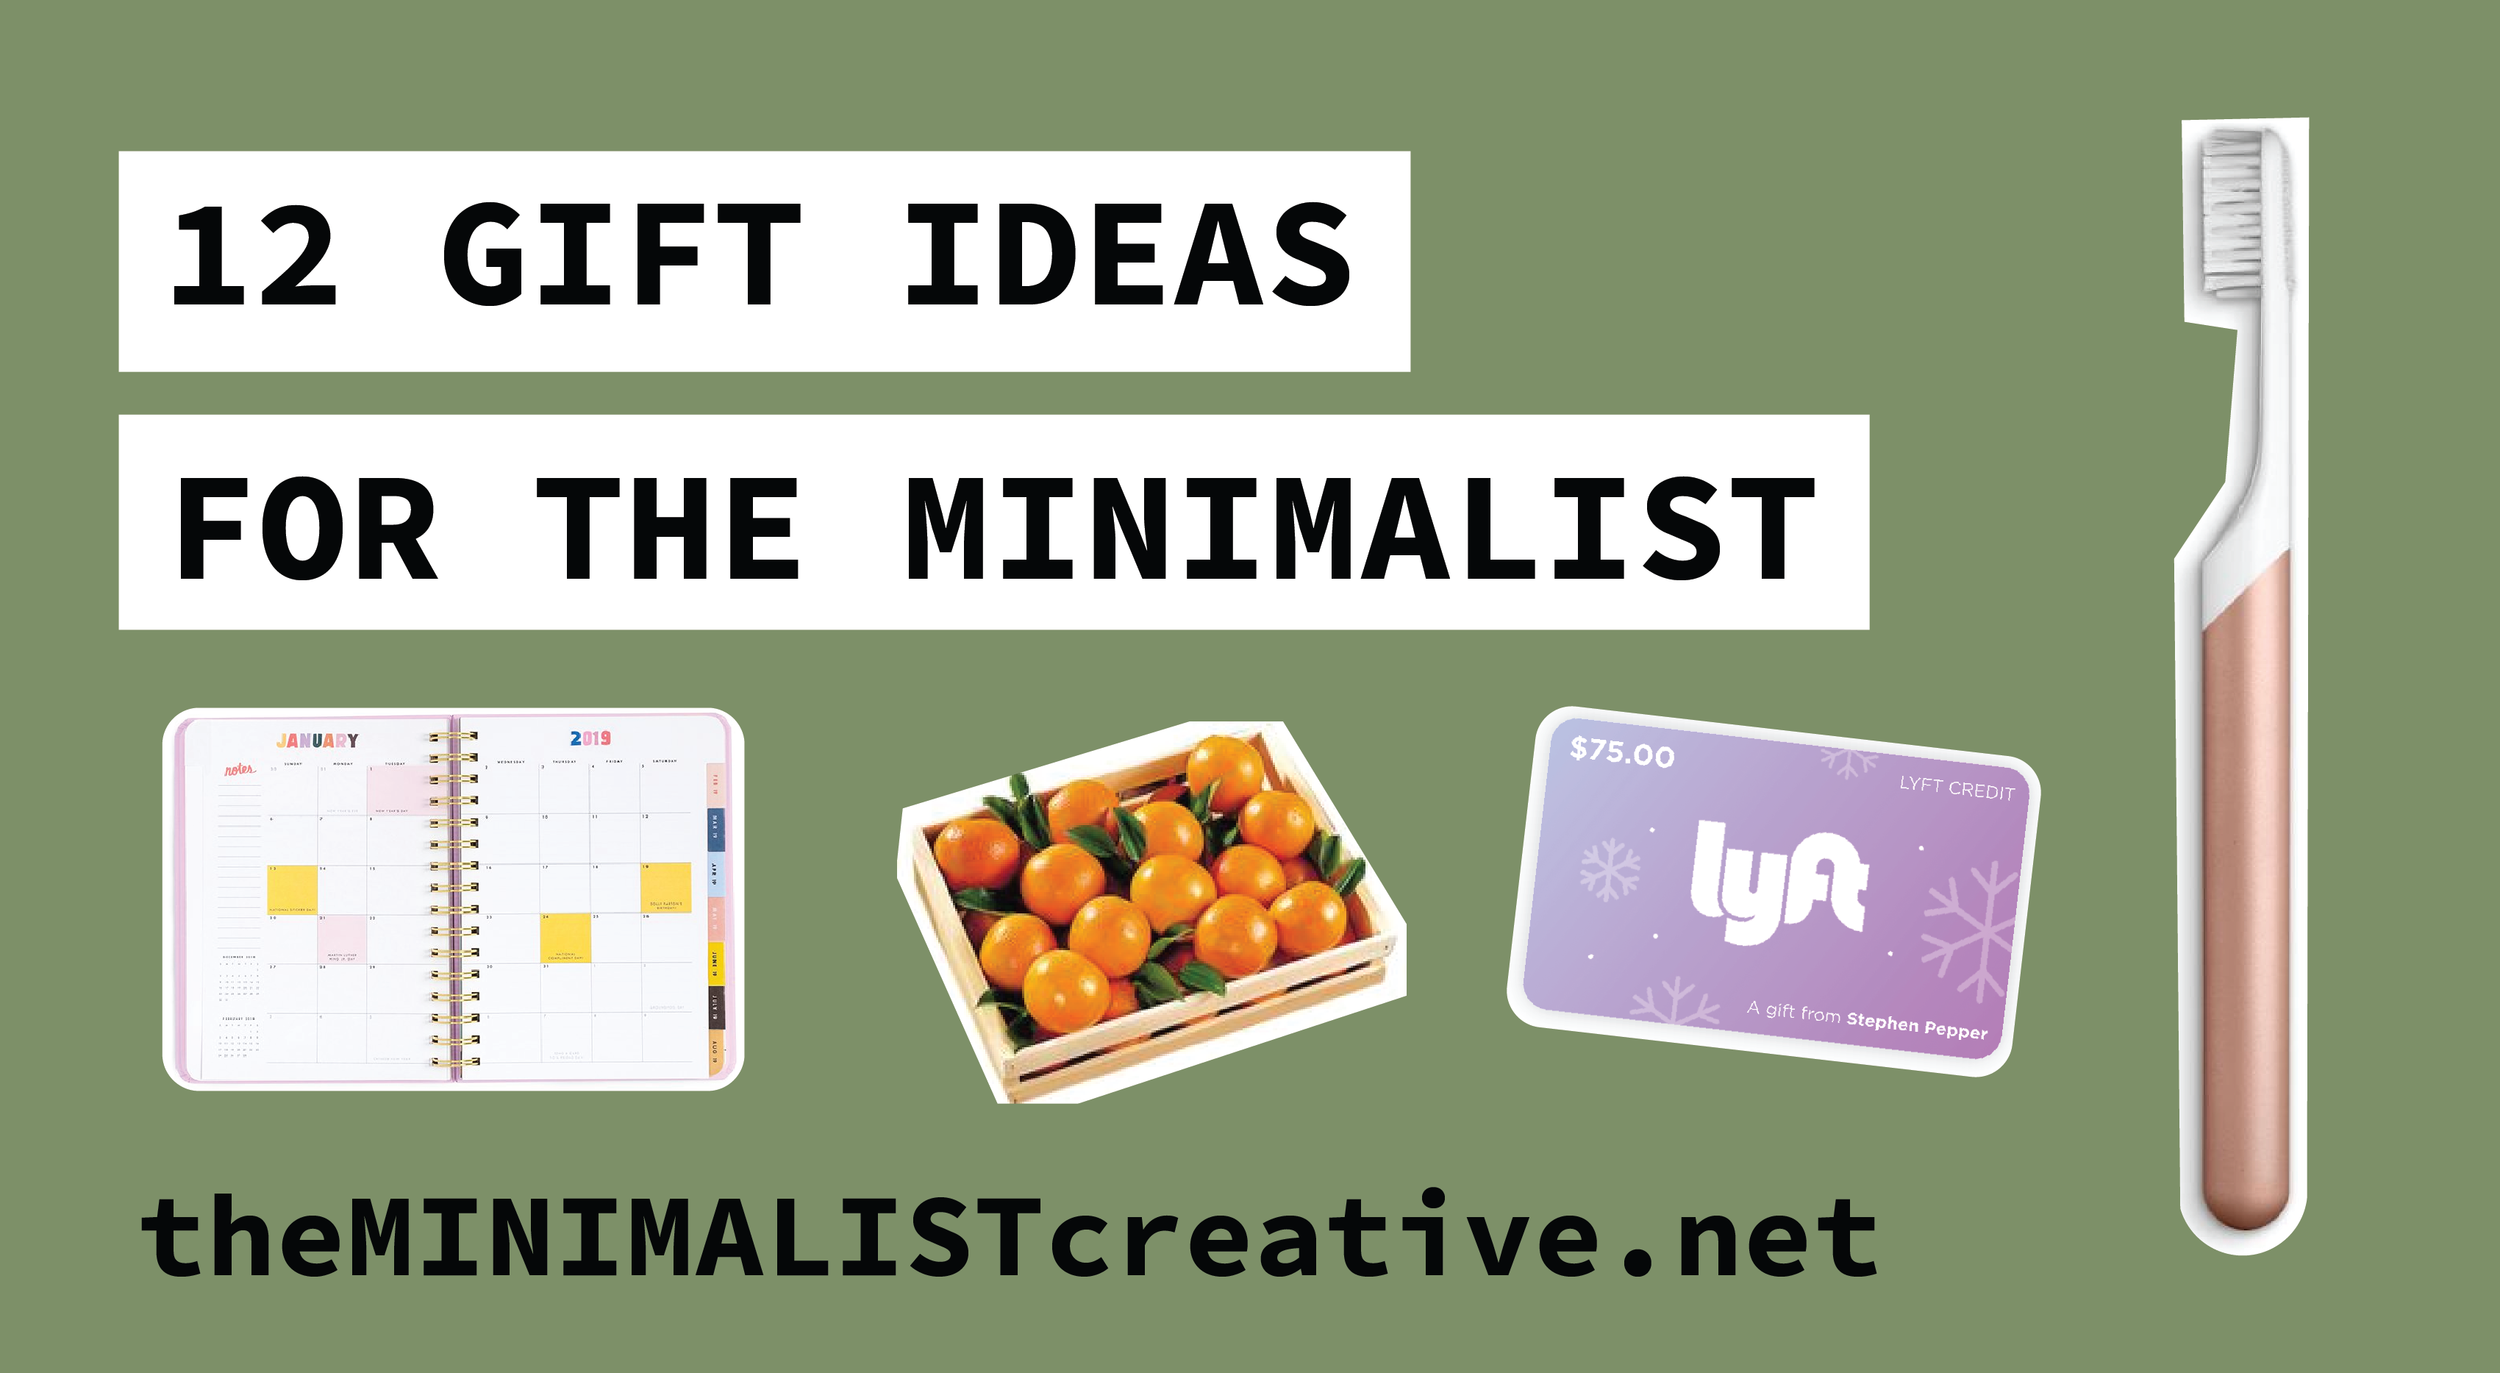 12 Holiday Gift Ideas For The Minimalist